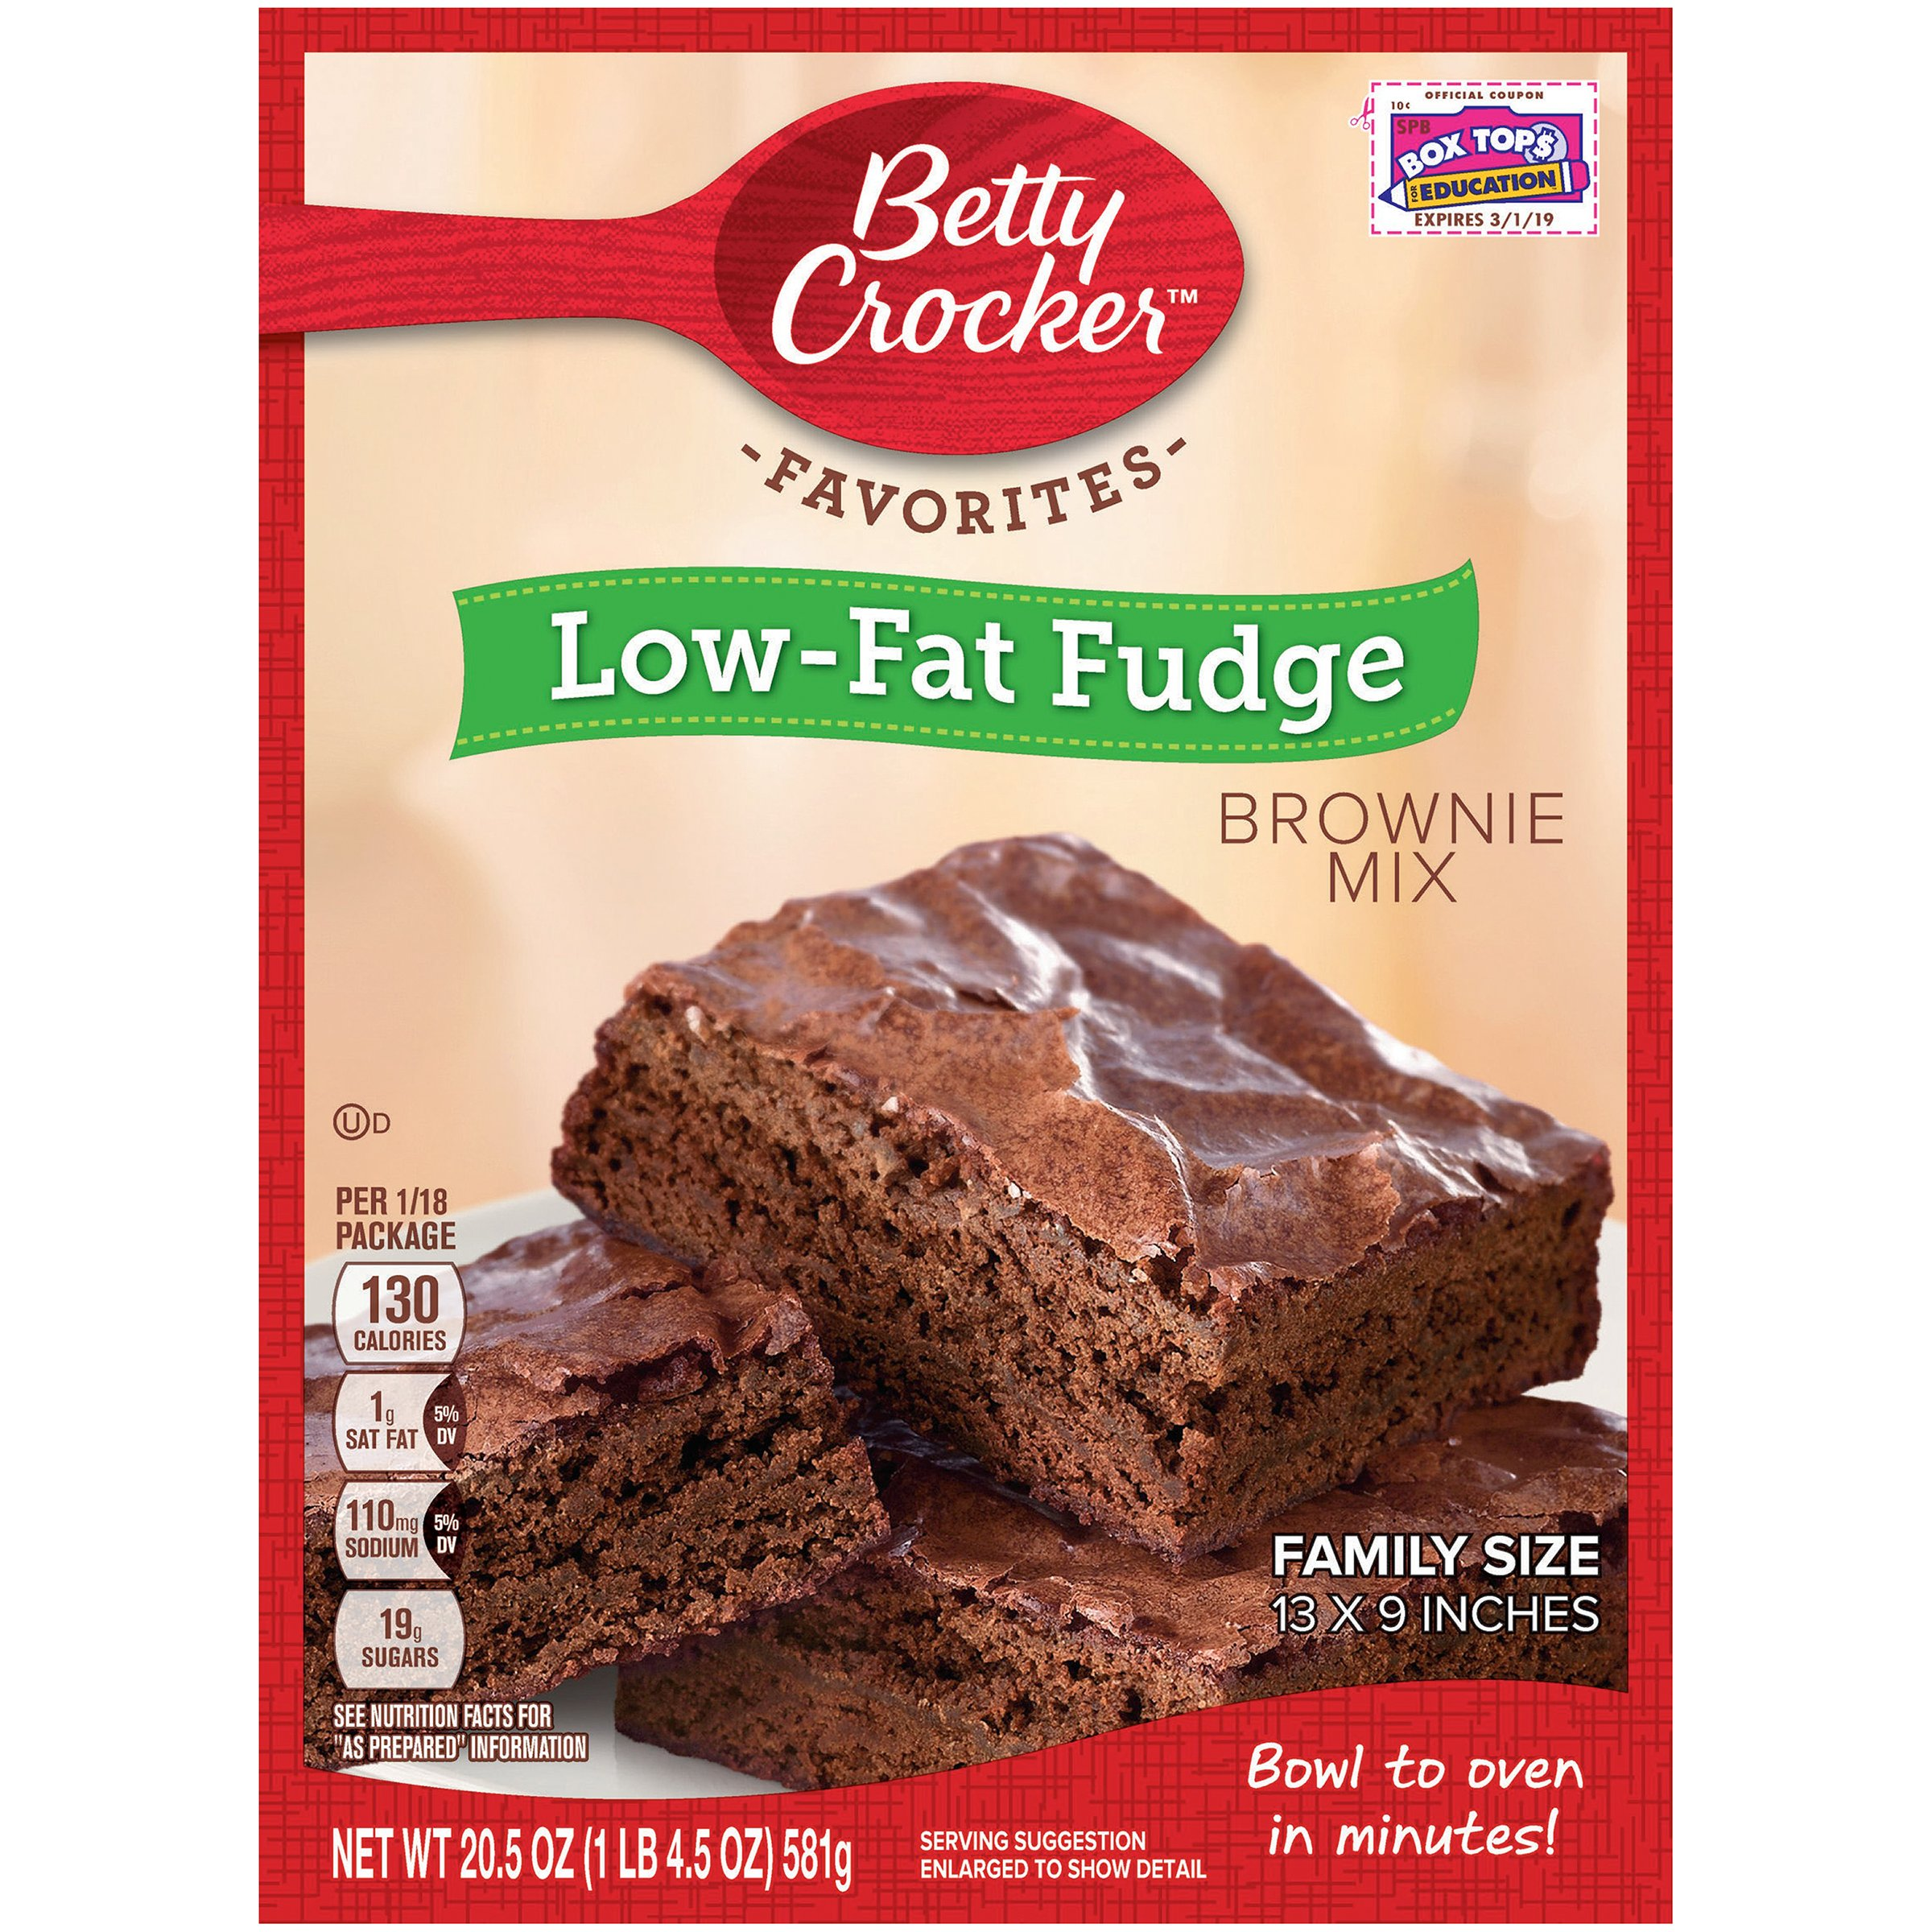 Betty Crocker Baking Mix, Low Fat Brownie Mix, Fudge, 20.5 Oz Box (Pack of 12)